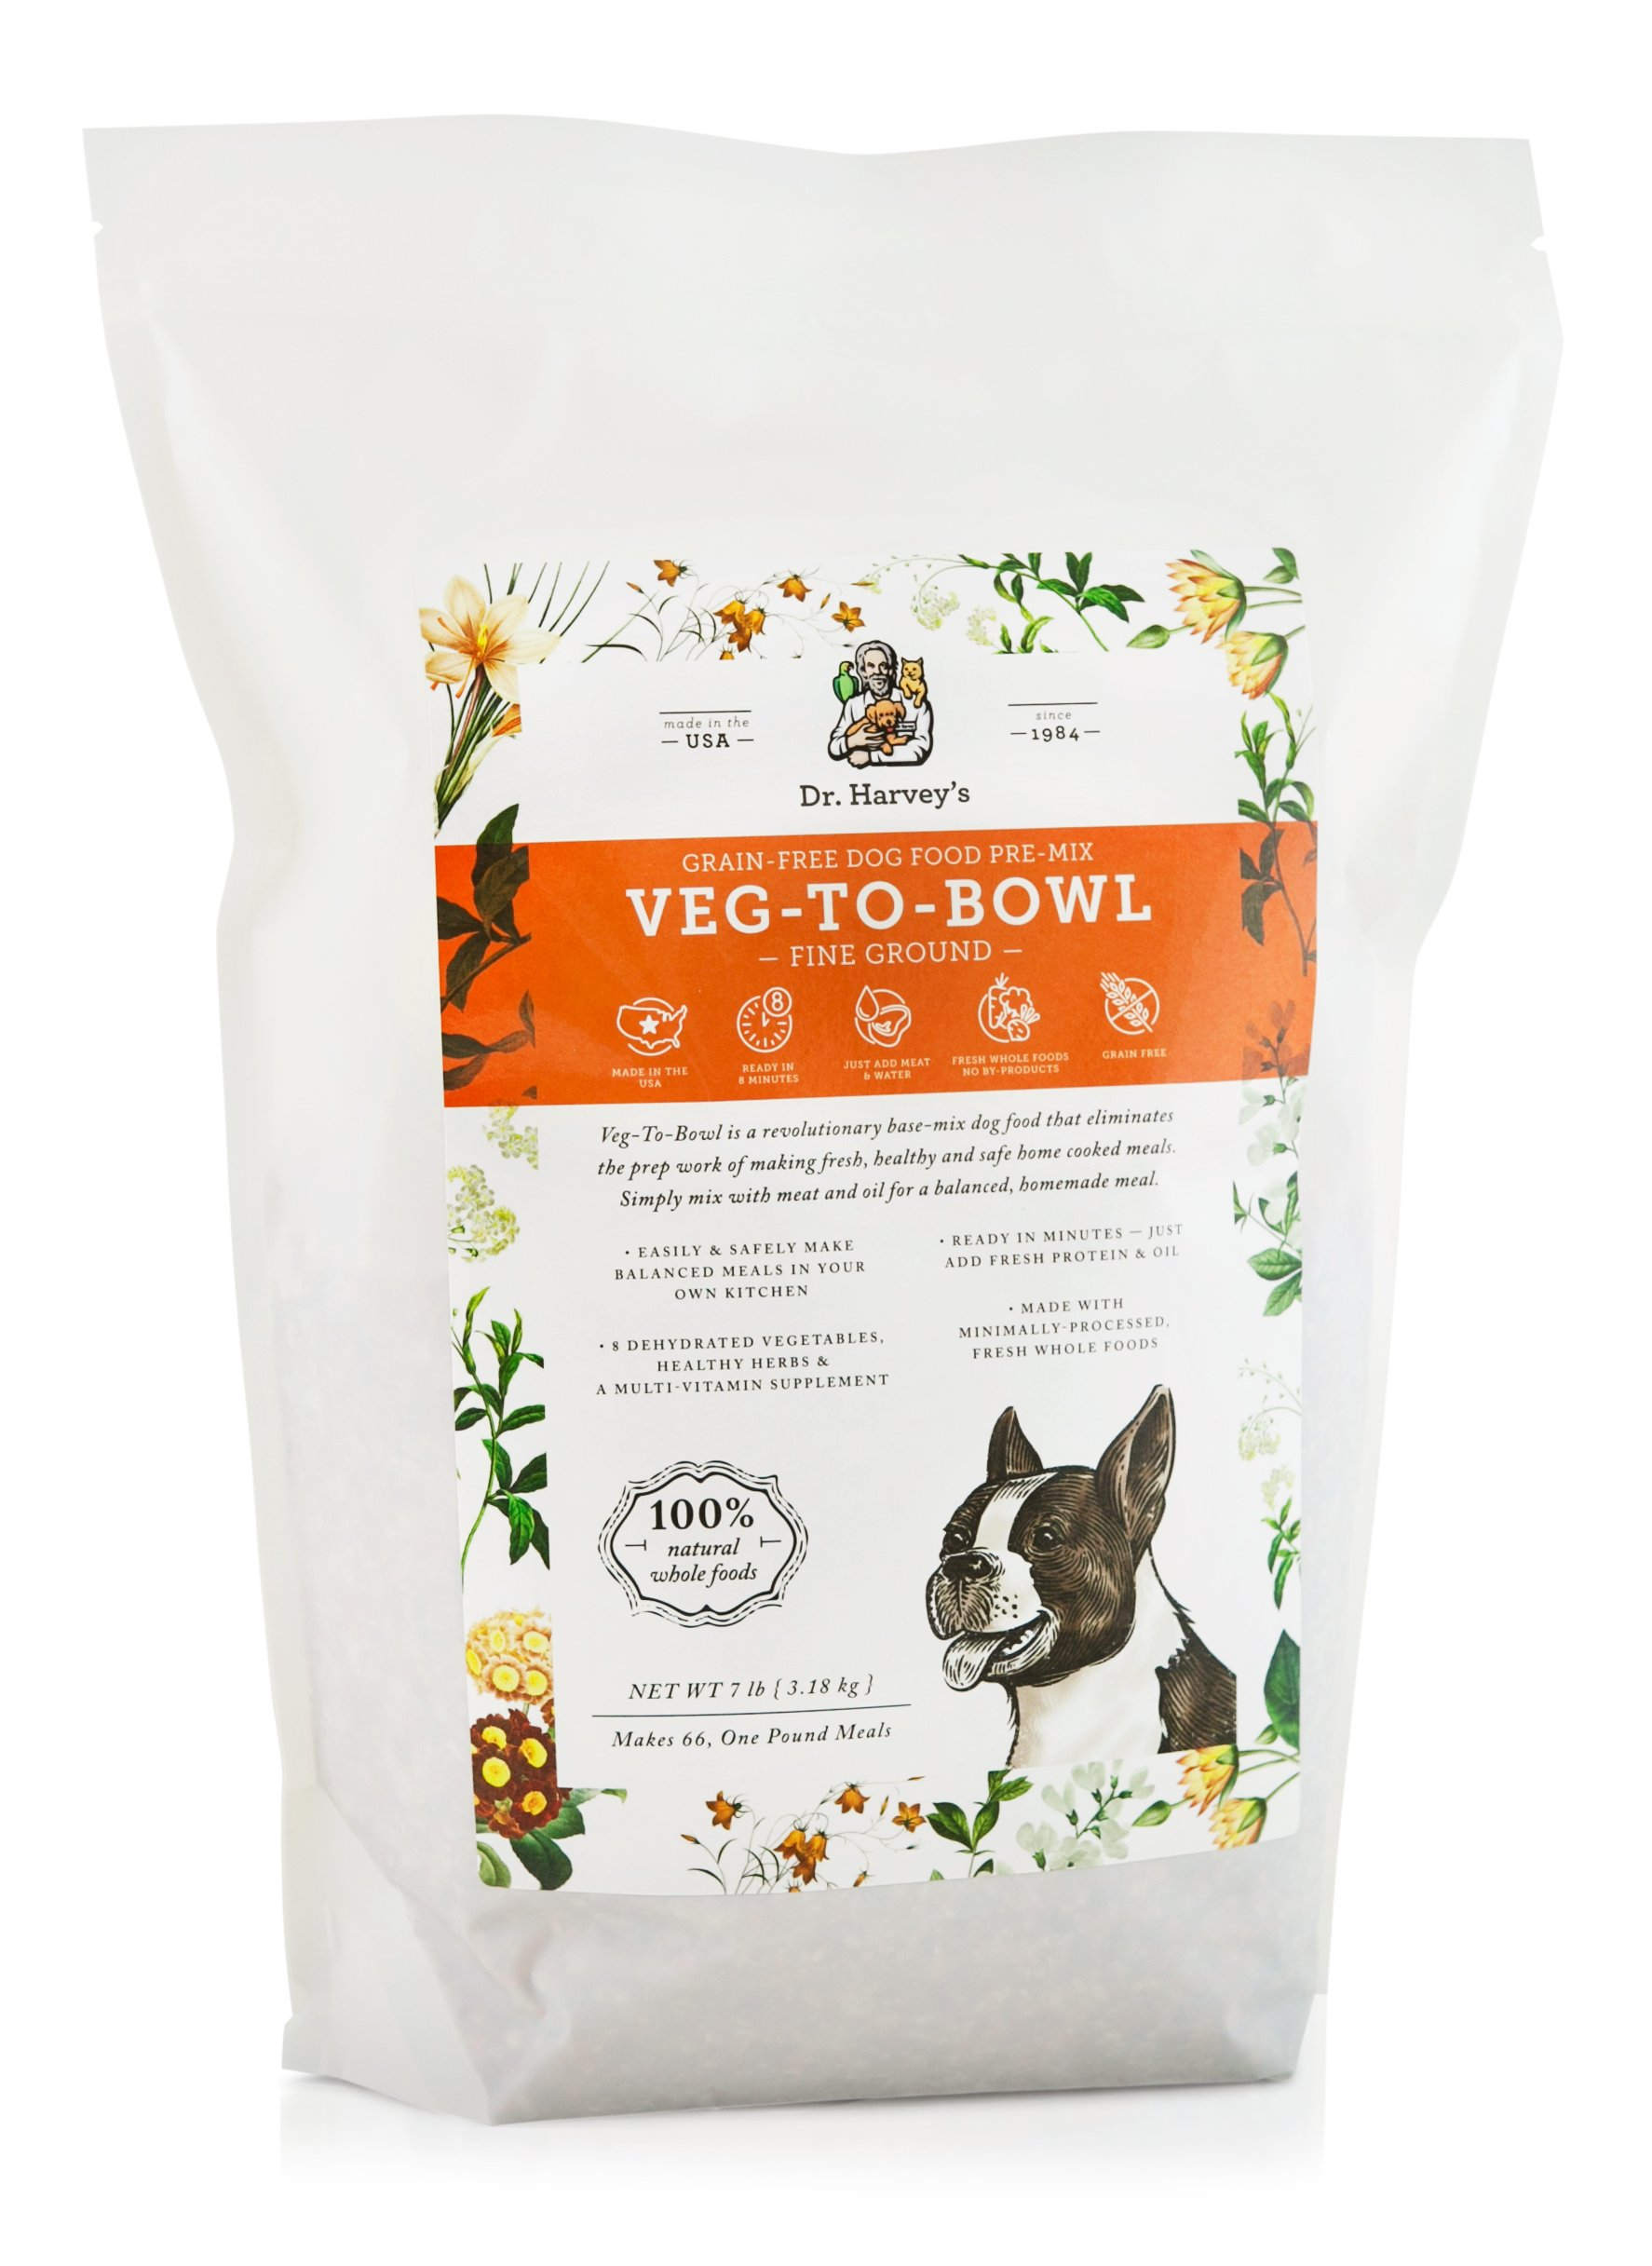 Dr. Harvey's Veg-to-Bowl Fine Ground Dog Food, Human Grade Dehydrated Base Mix for Dogs, Grain Free Holistic Mix for Small Dogs or Picky Eaters (7 Pounds) by Dr. Harvey's